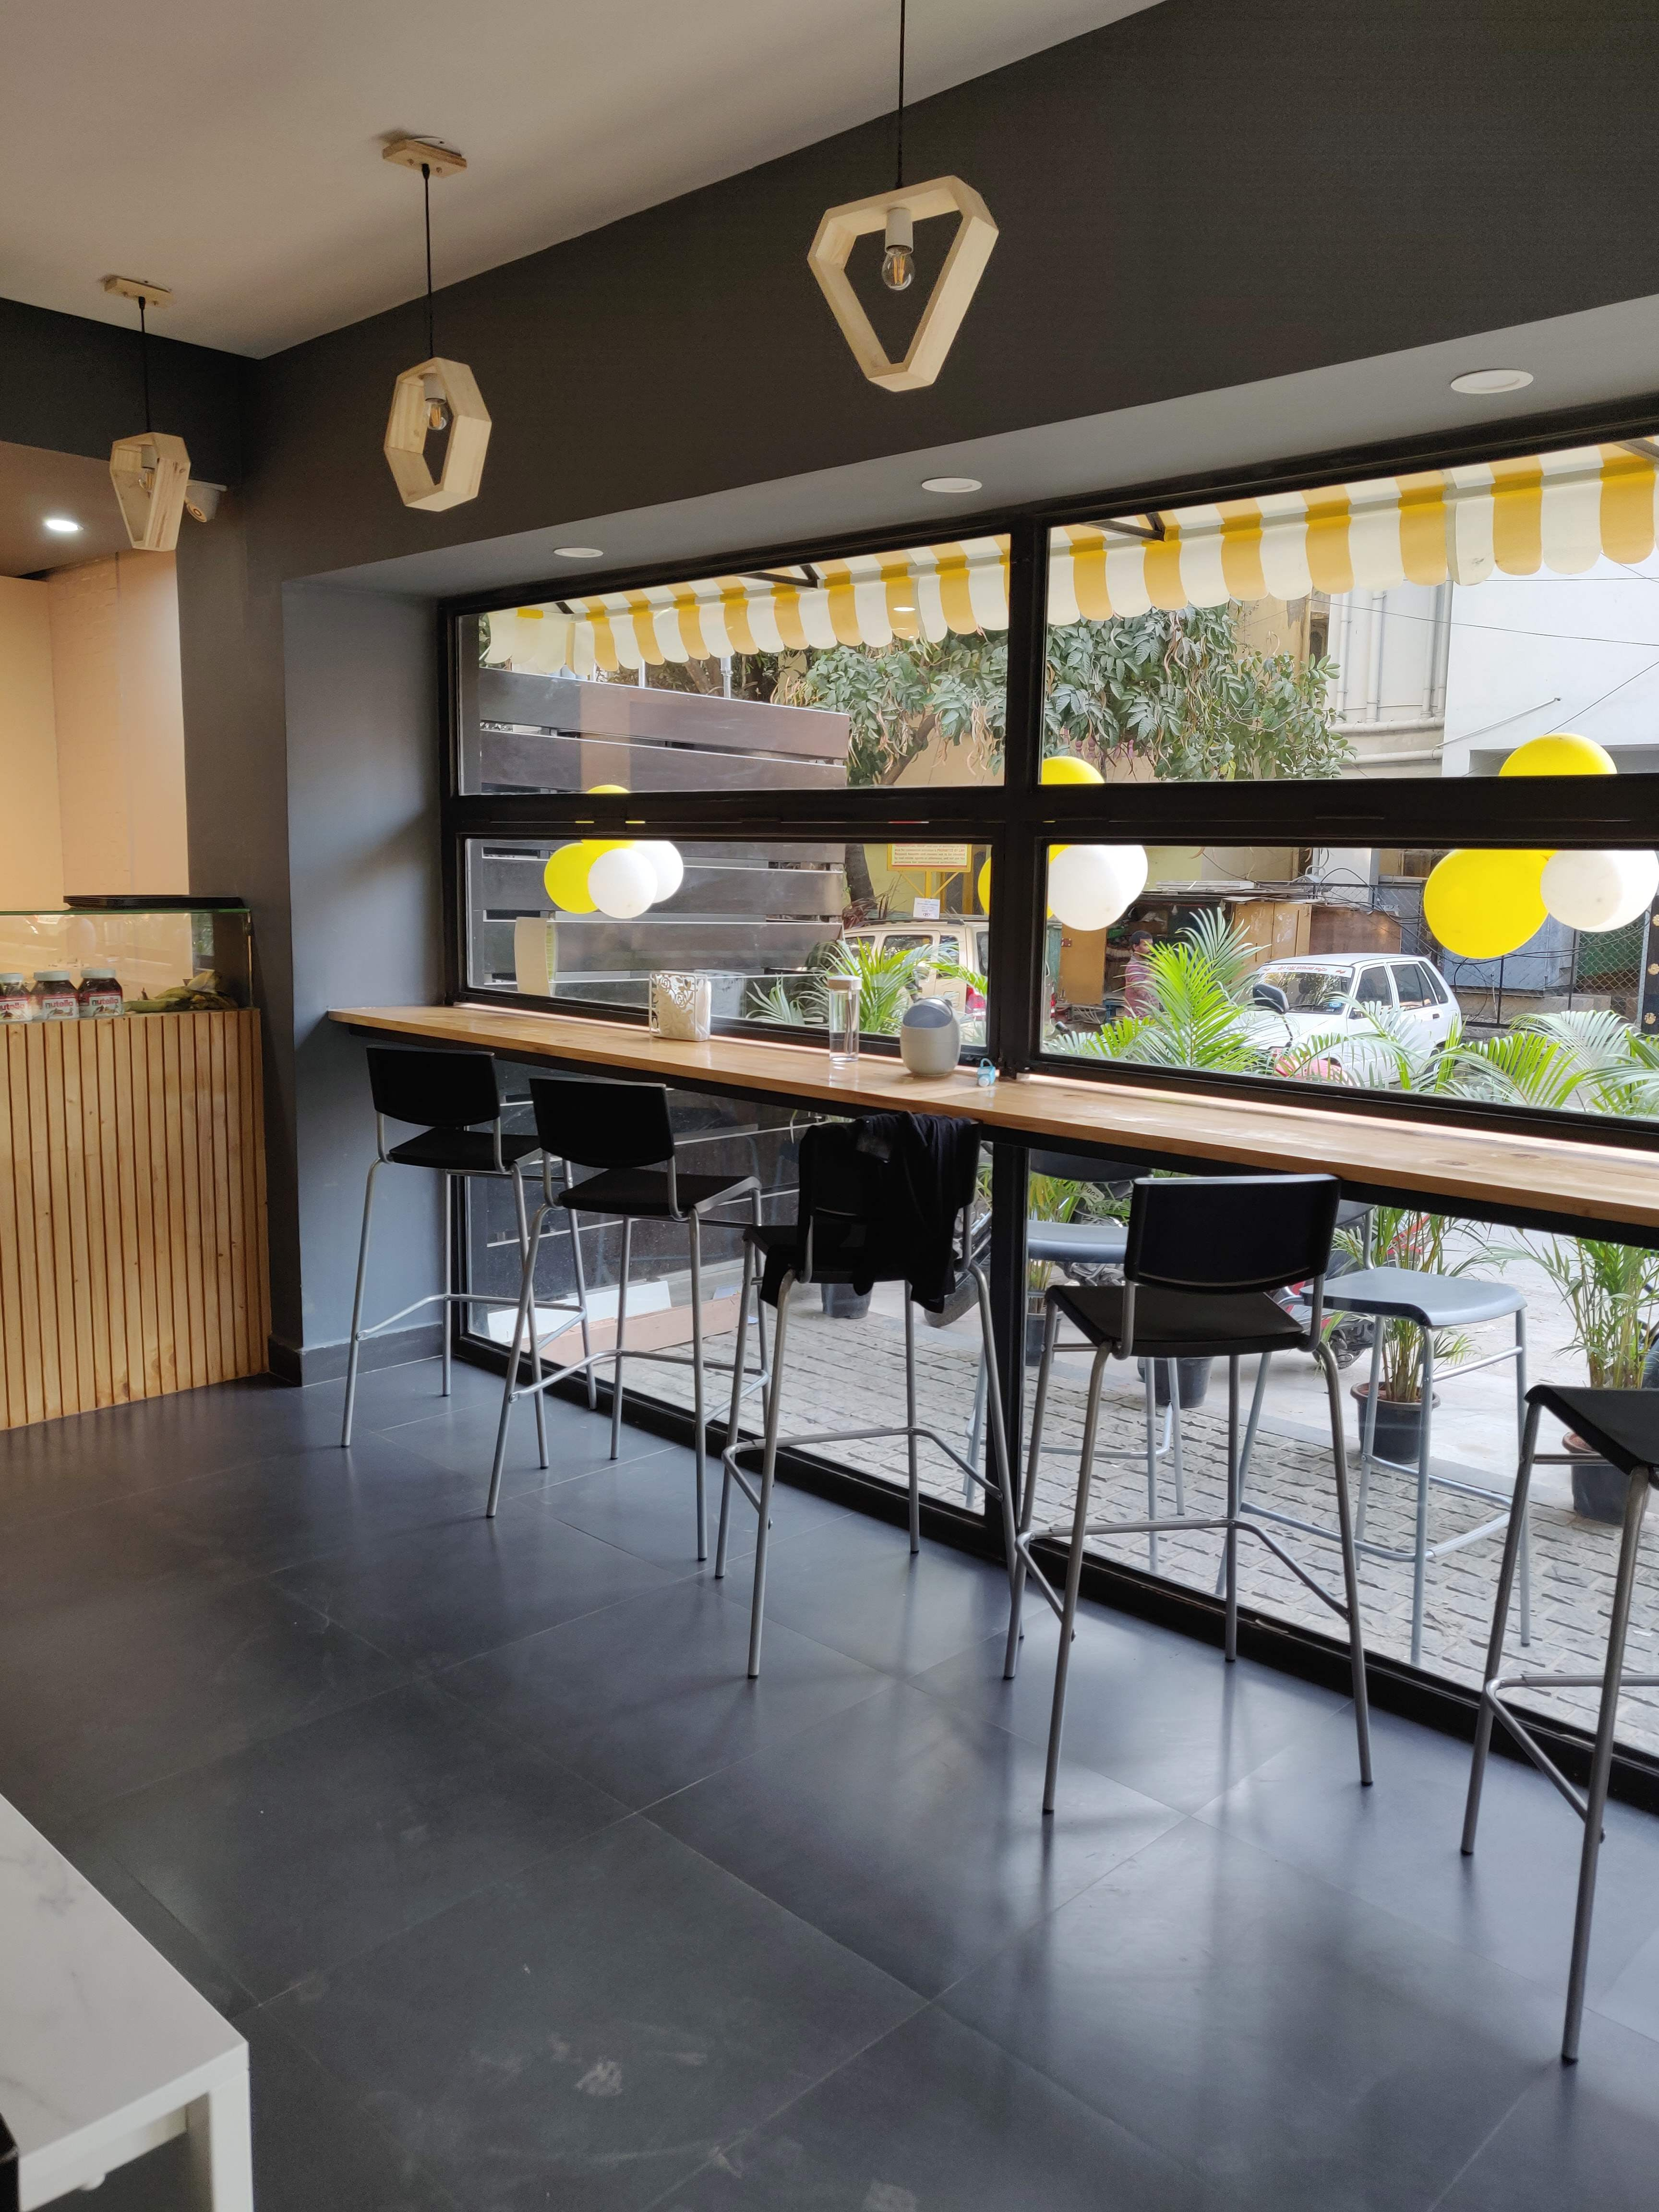 This Small Little Place Is A Go-To Place For All Crepe Lovers